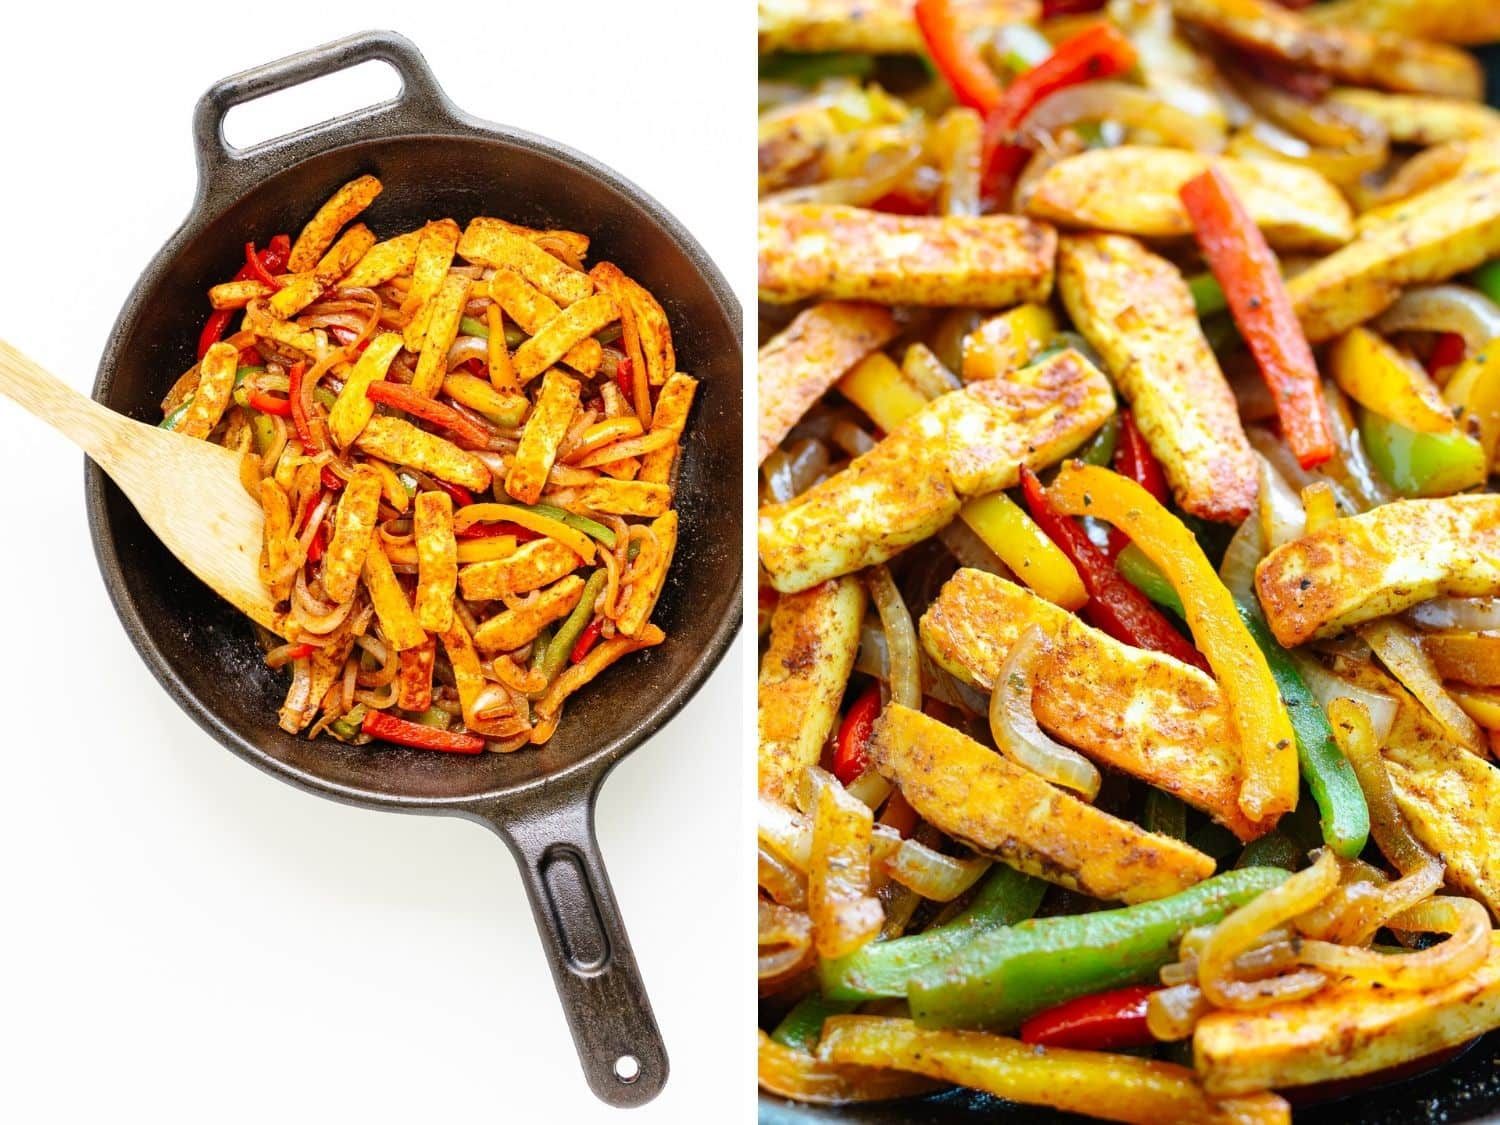 Collage showing halloumi vegetable fajita mixture being stirred in a cast iron skillet and a closeup.